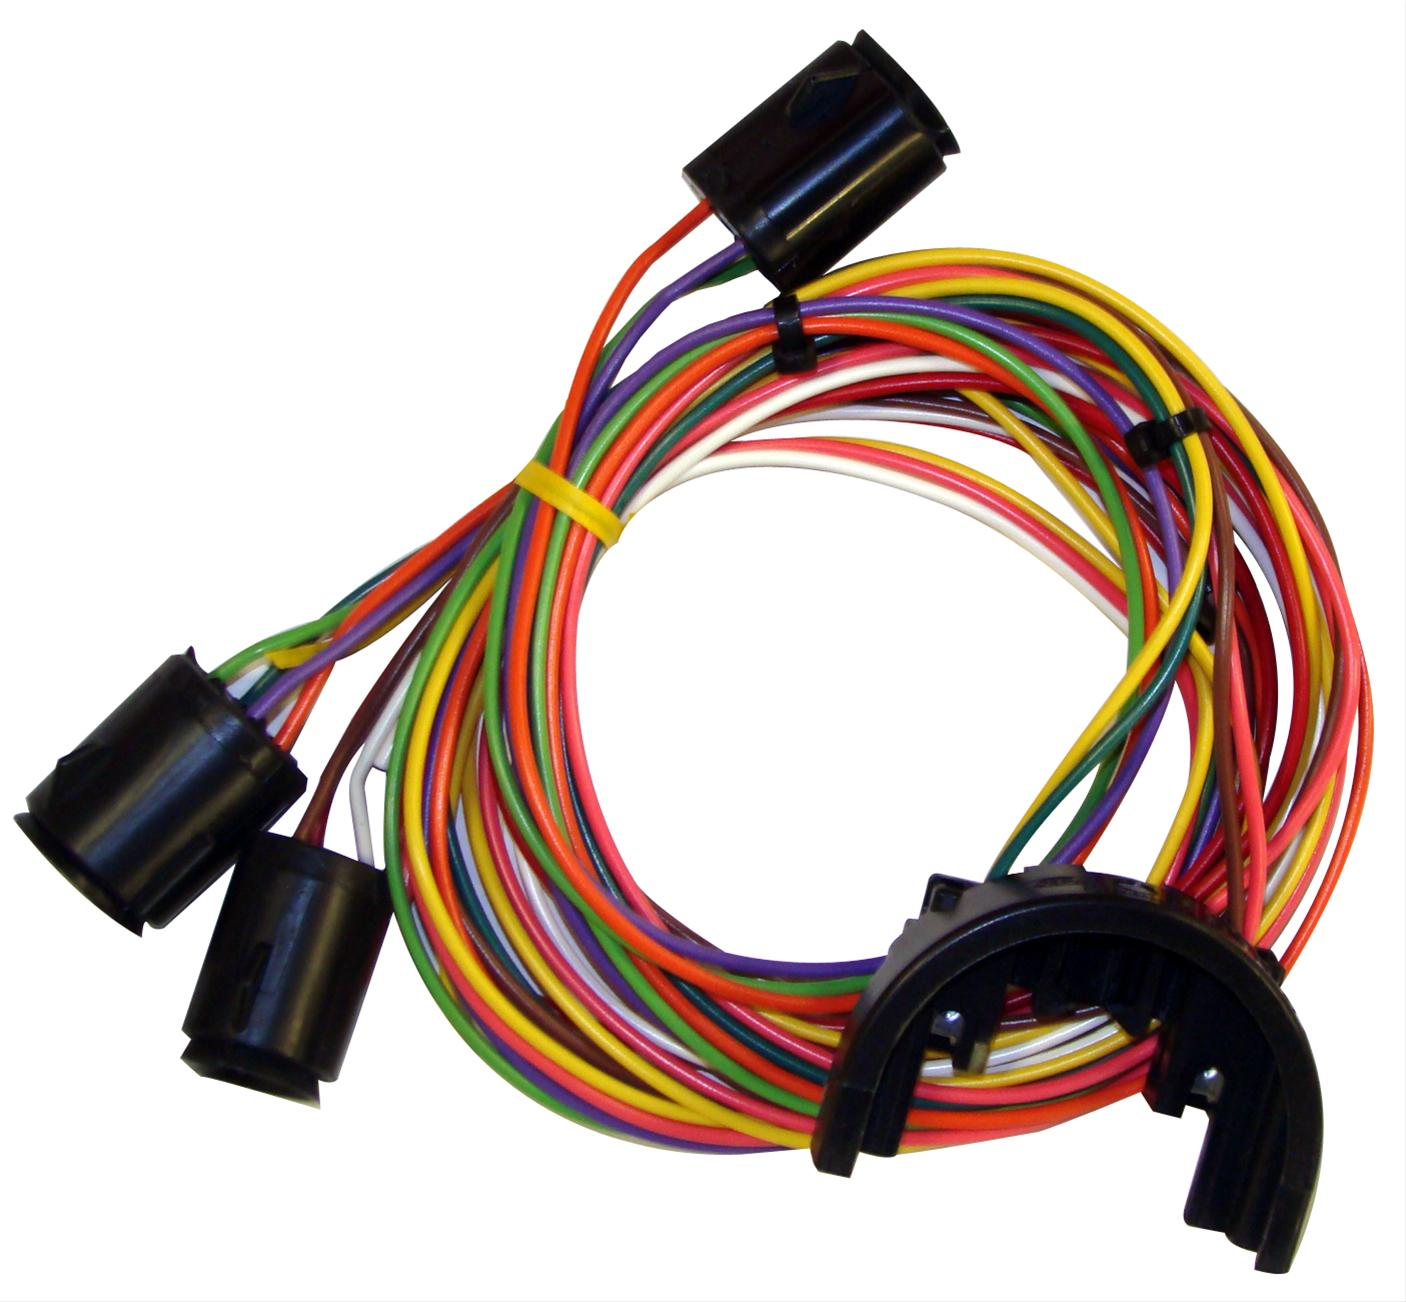 hight resolution of american autowire ignition box wiring harness duraspark magnetic duraspark wiring harness